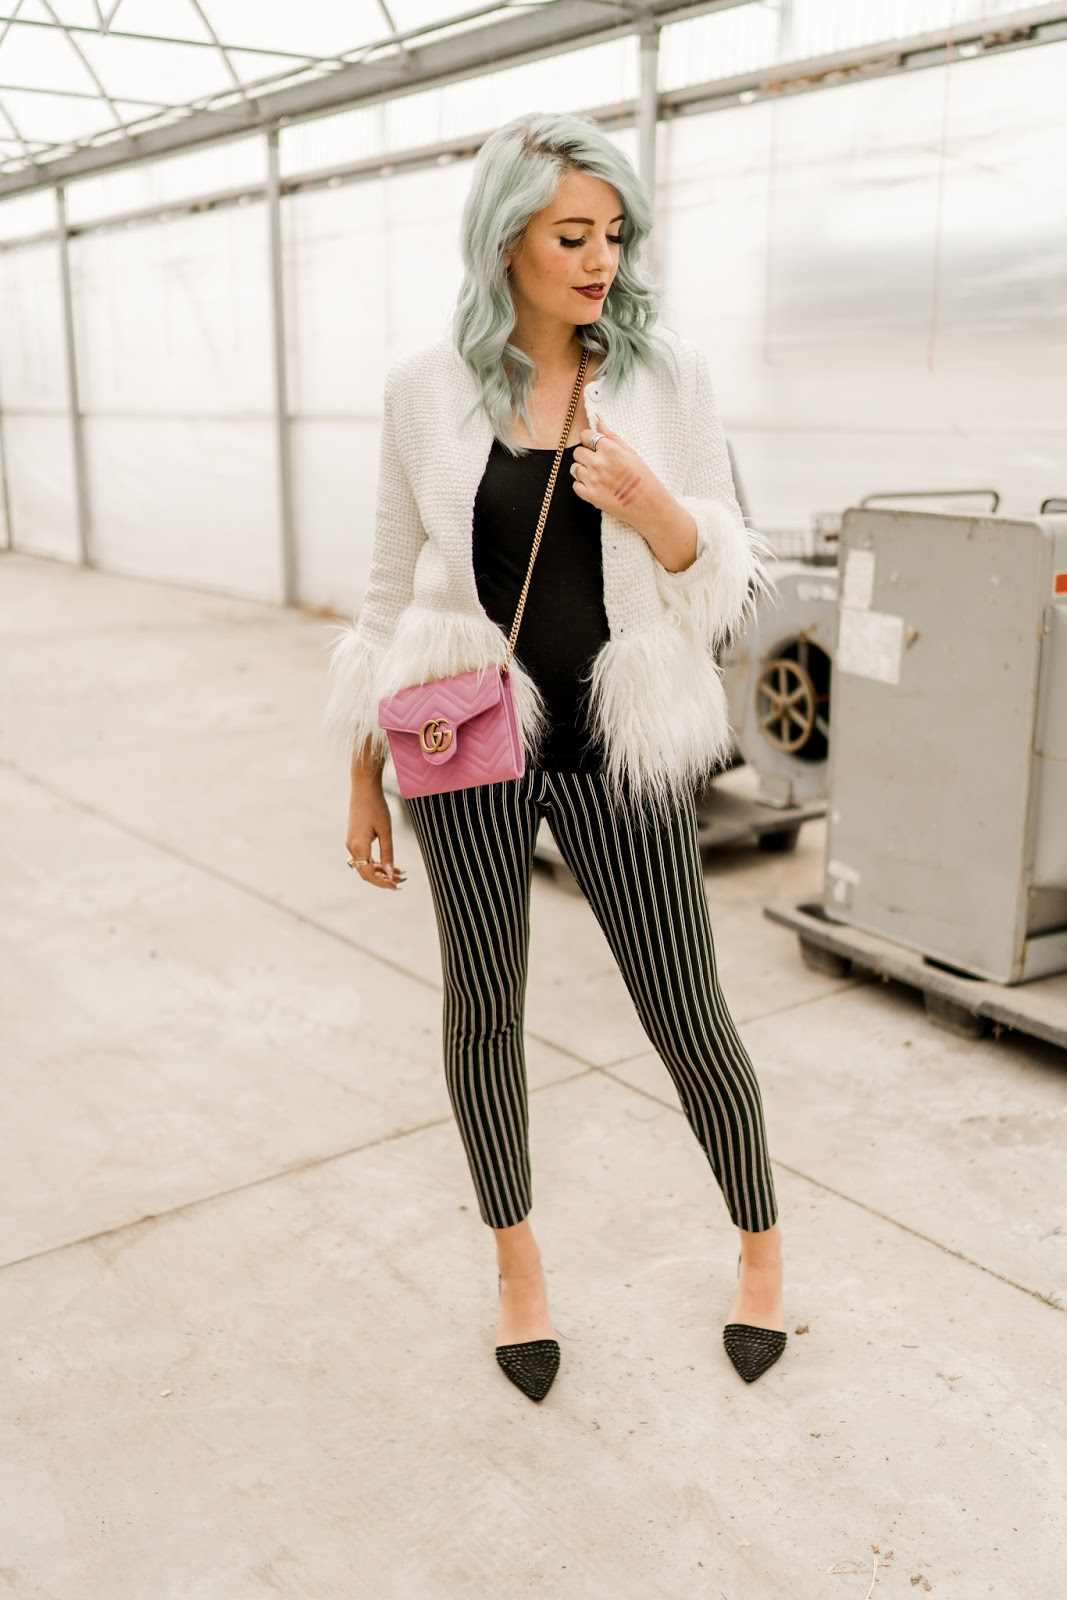 Pregnancy Style, Pregnant Outfit, Striped Leggings